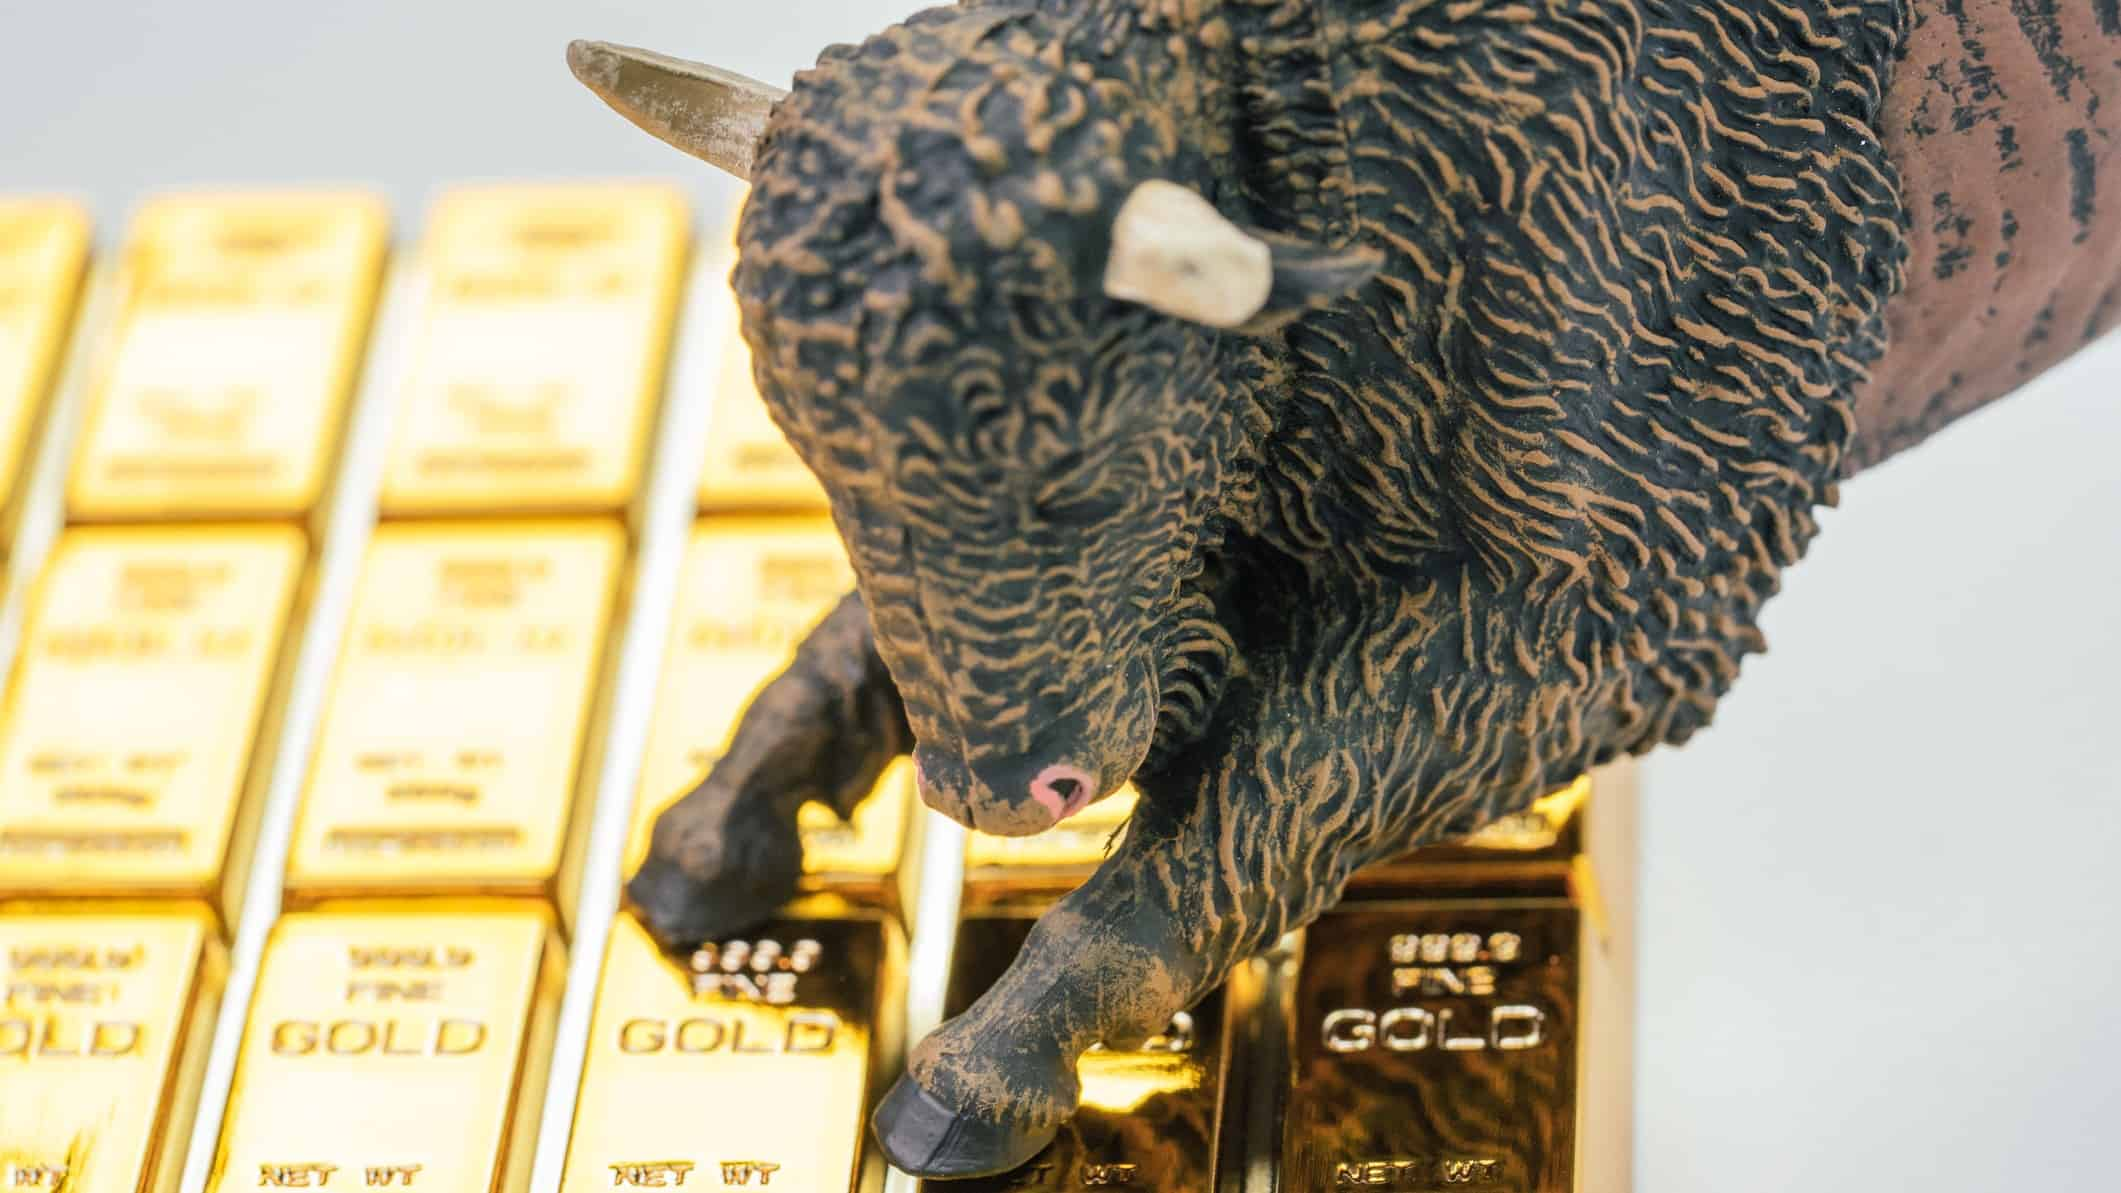 figurine of a bull standing on gold bars